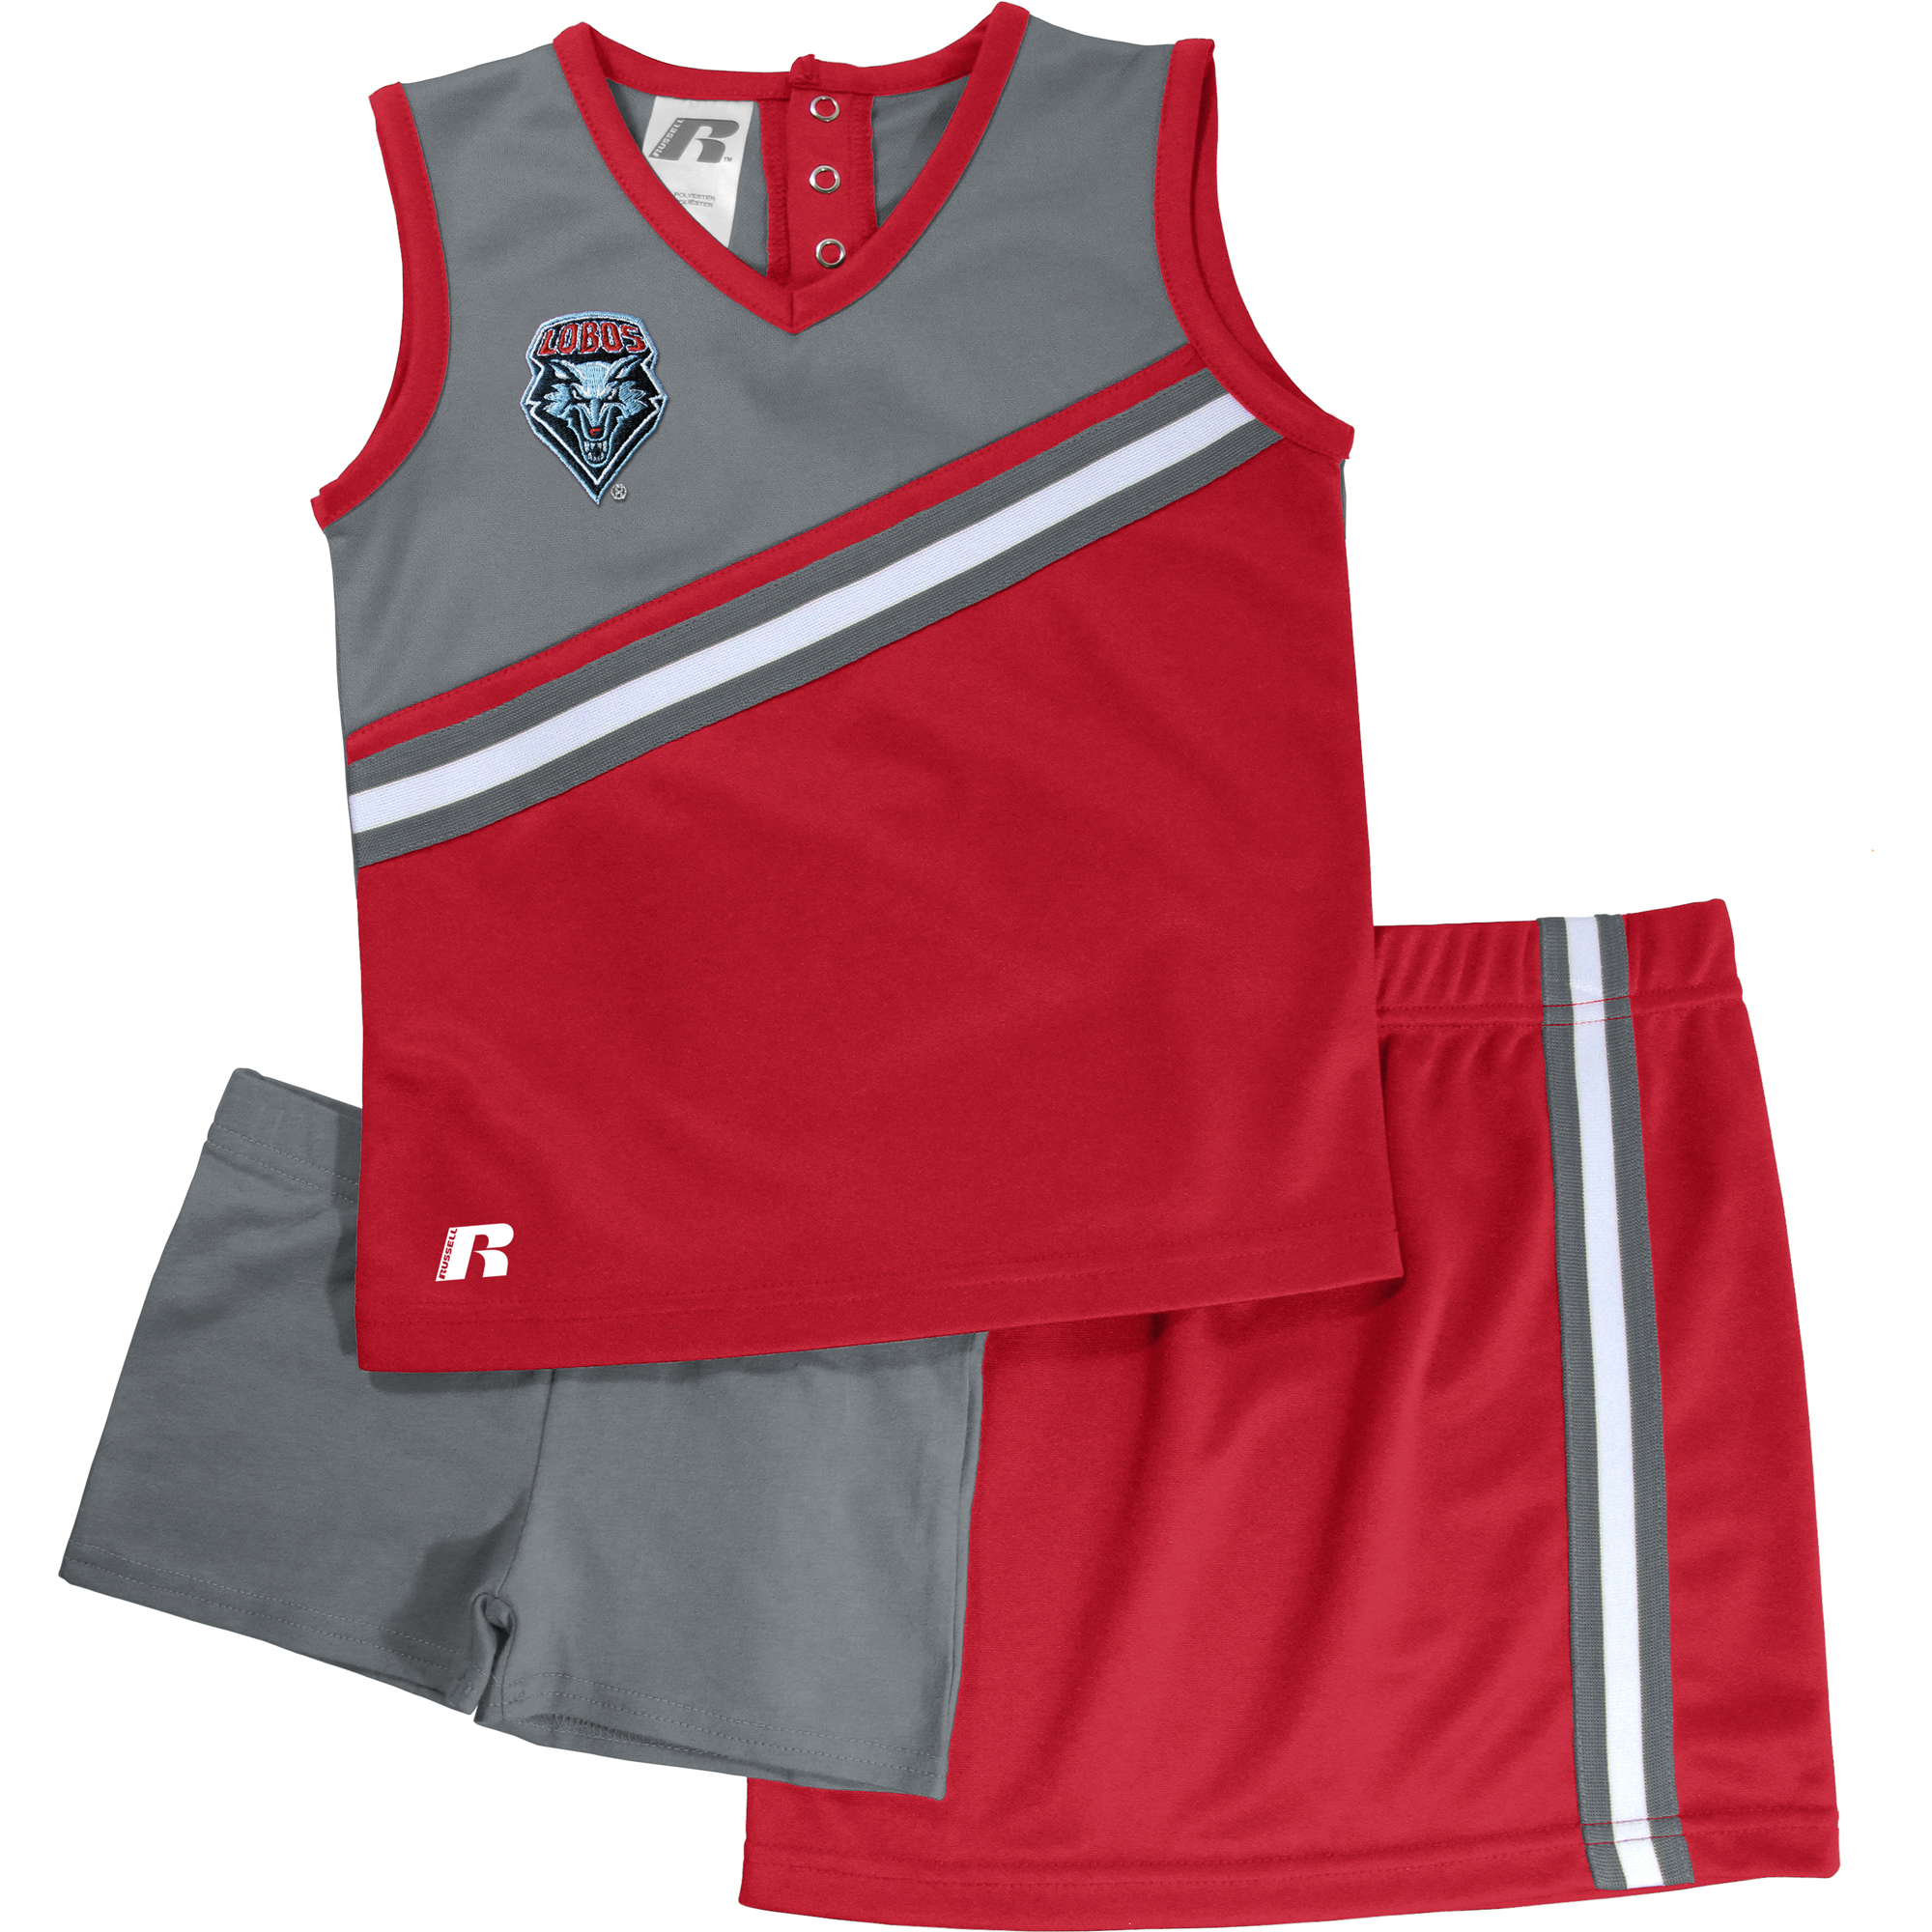 Russell NCAA New Mexico Lobos, Toddler Girls 3 pc Cheer Set